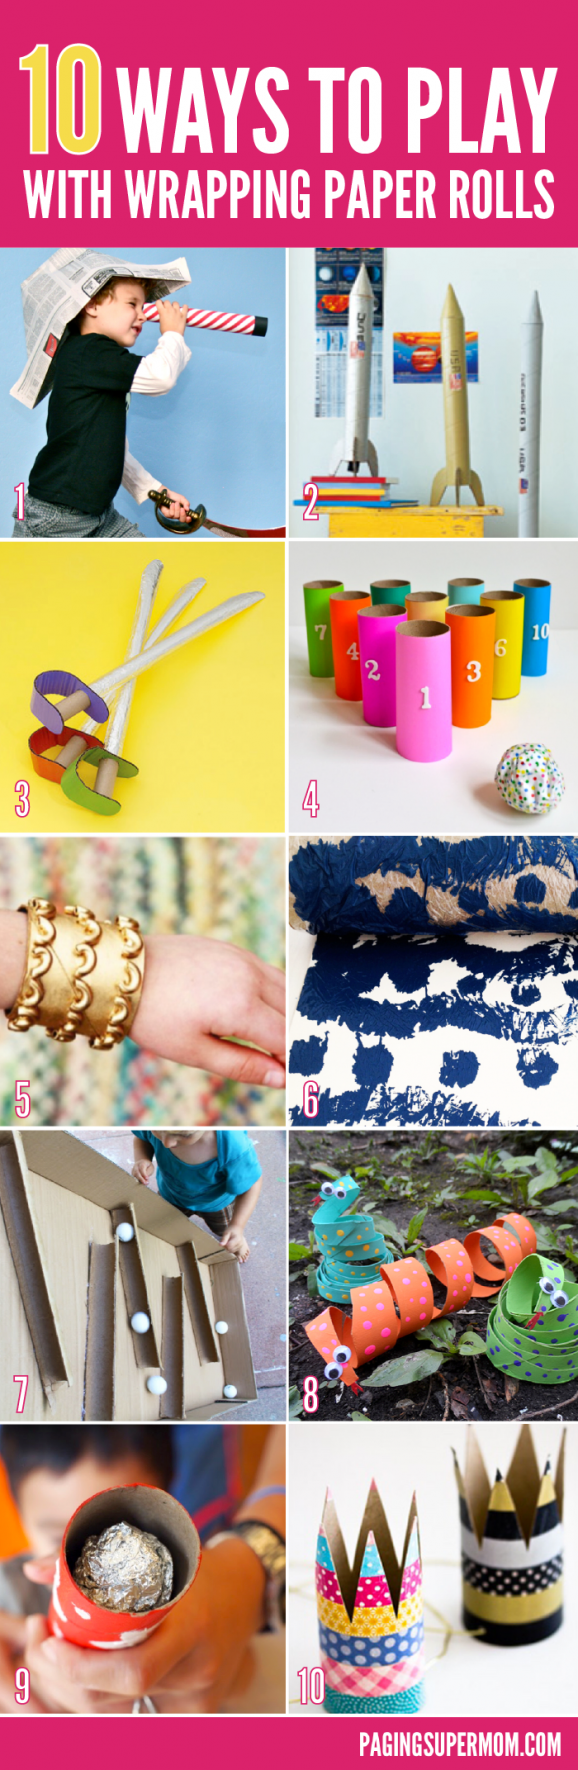 10 Fun Ways to Use Wrapping Paper Rolls via @PaigngSupermom #Christmas #KidsCrafts